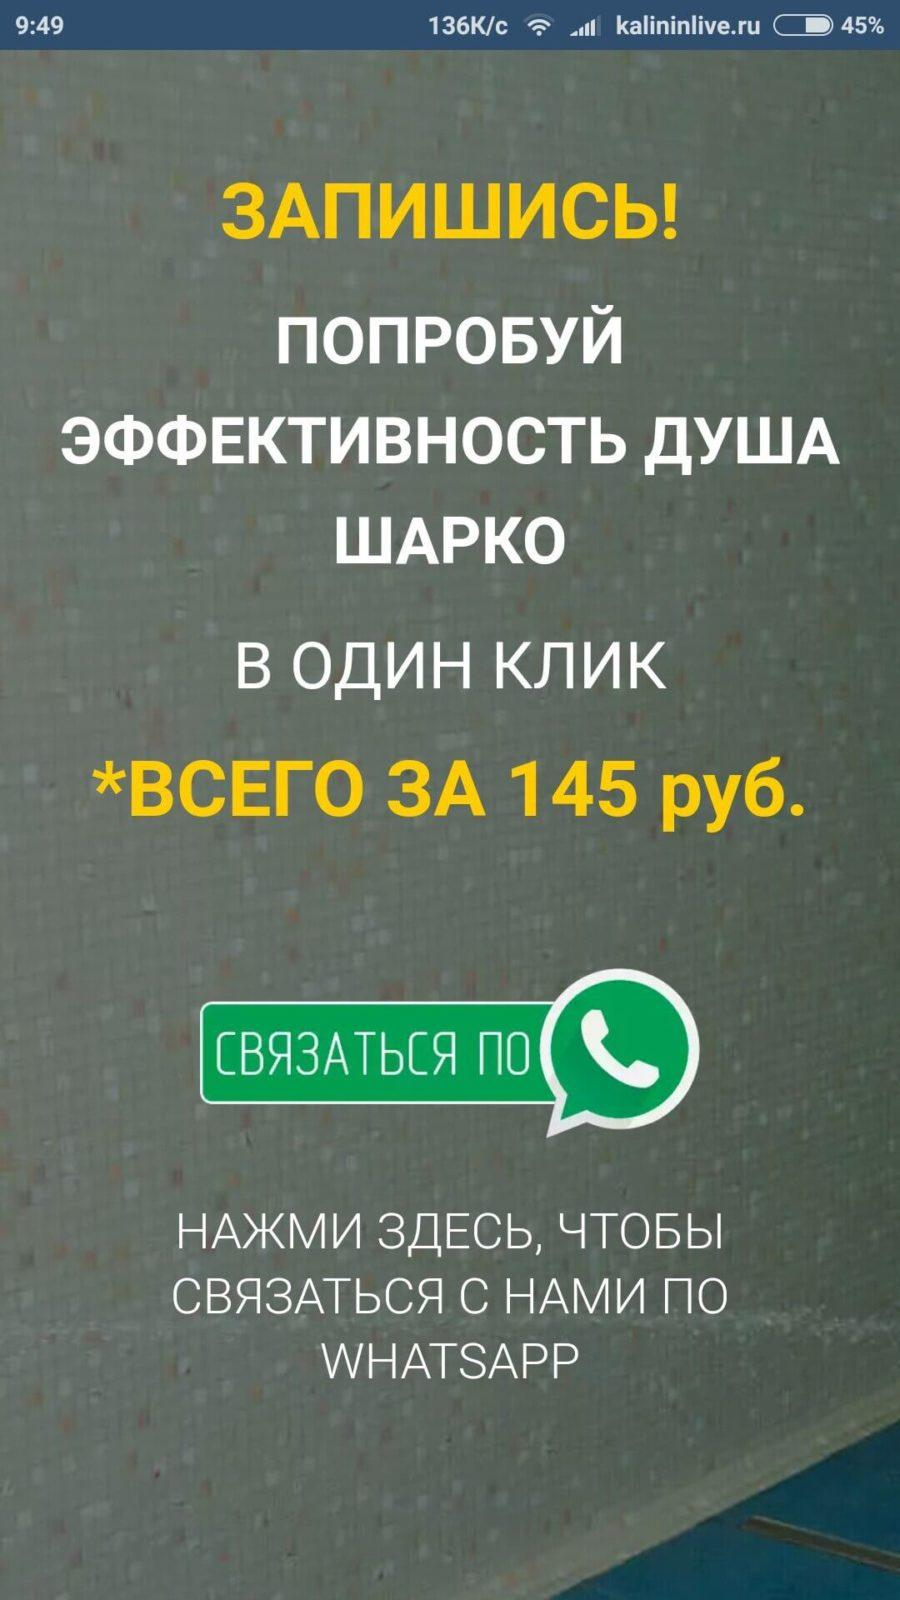 Интеграция WhatsApp в Instagram и другие соц сети